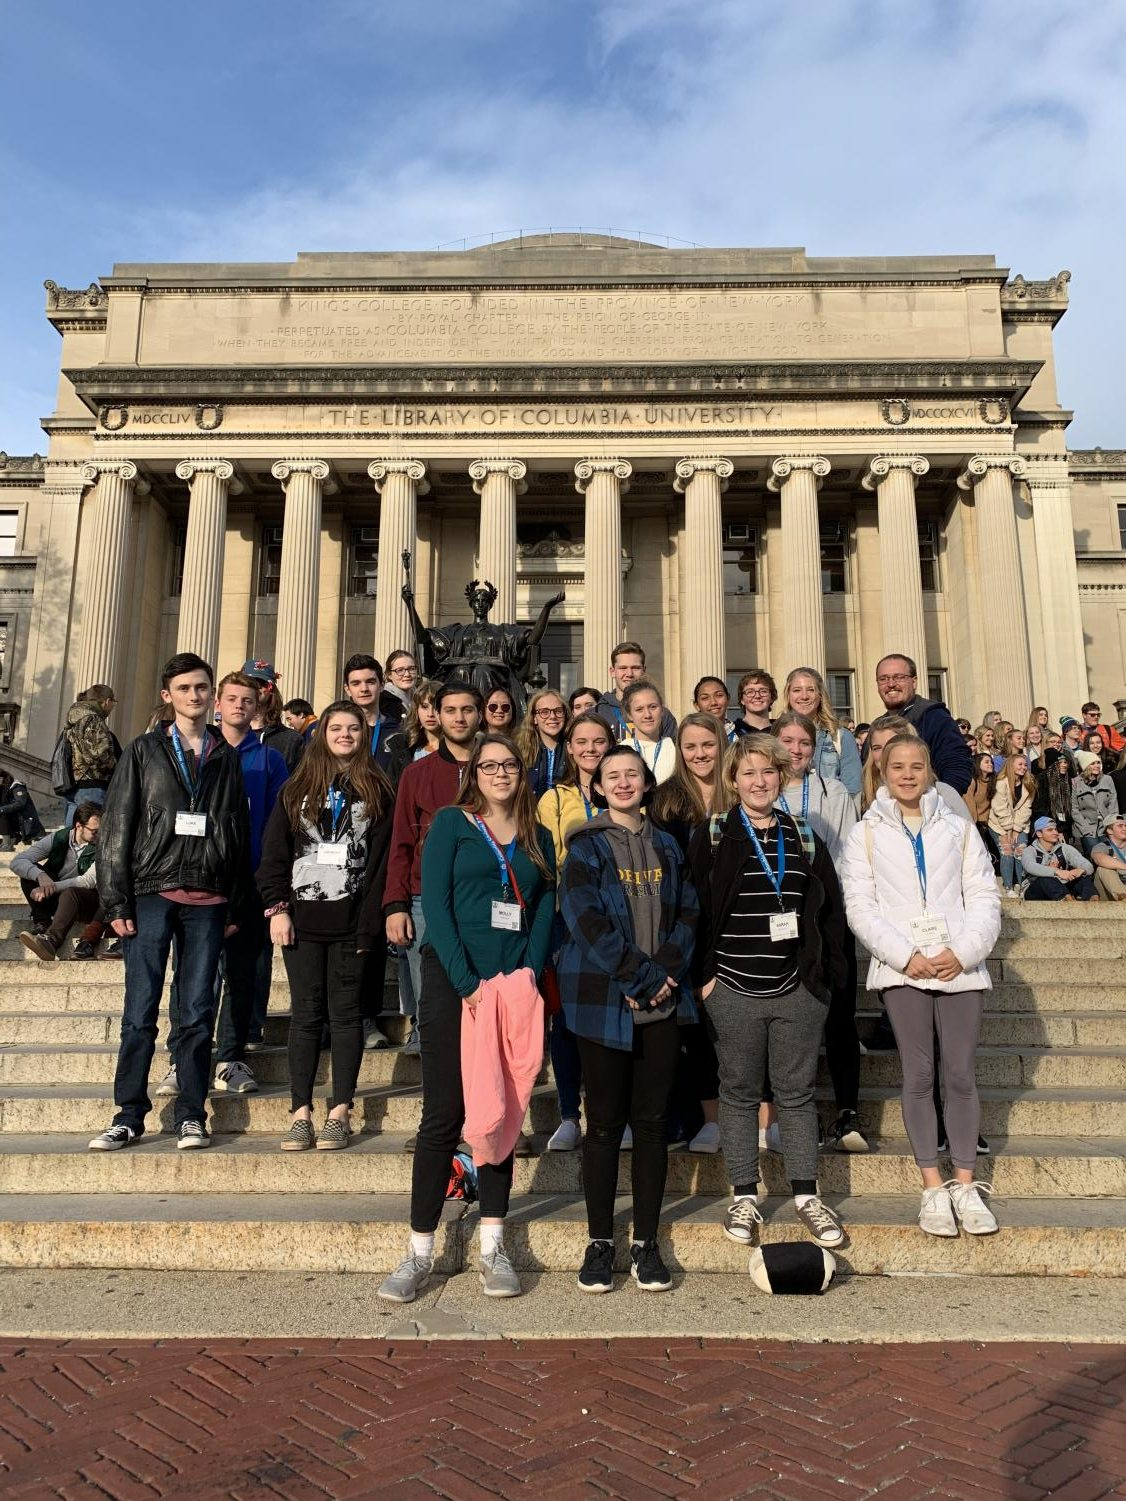 The Delphi Staff stand upon the stairs of Columbia University's Library stairs.